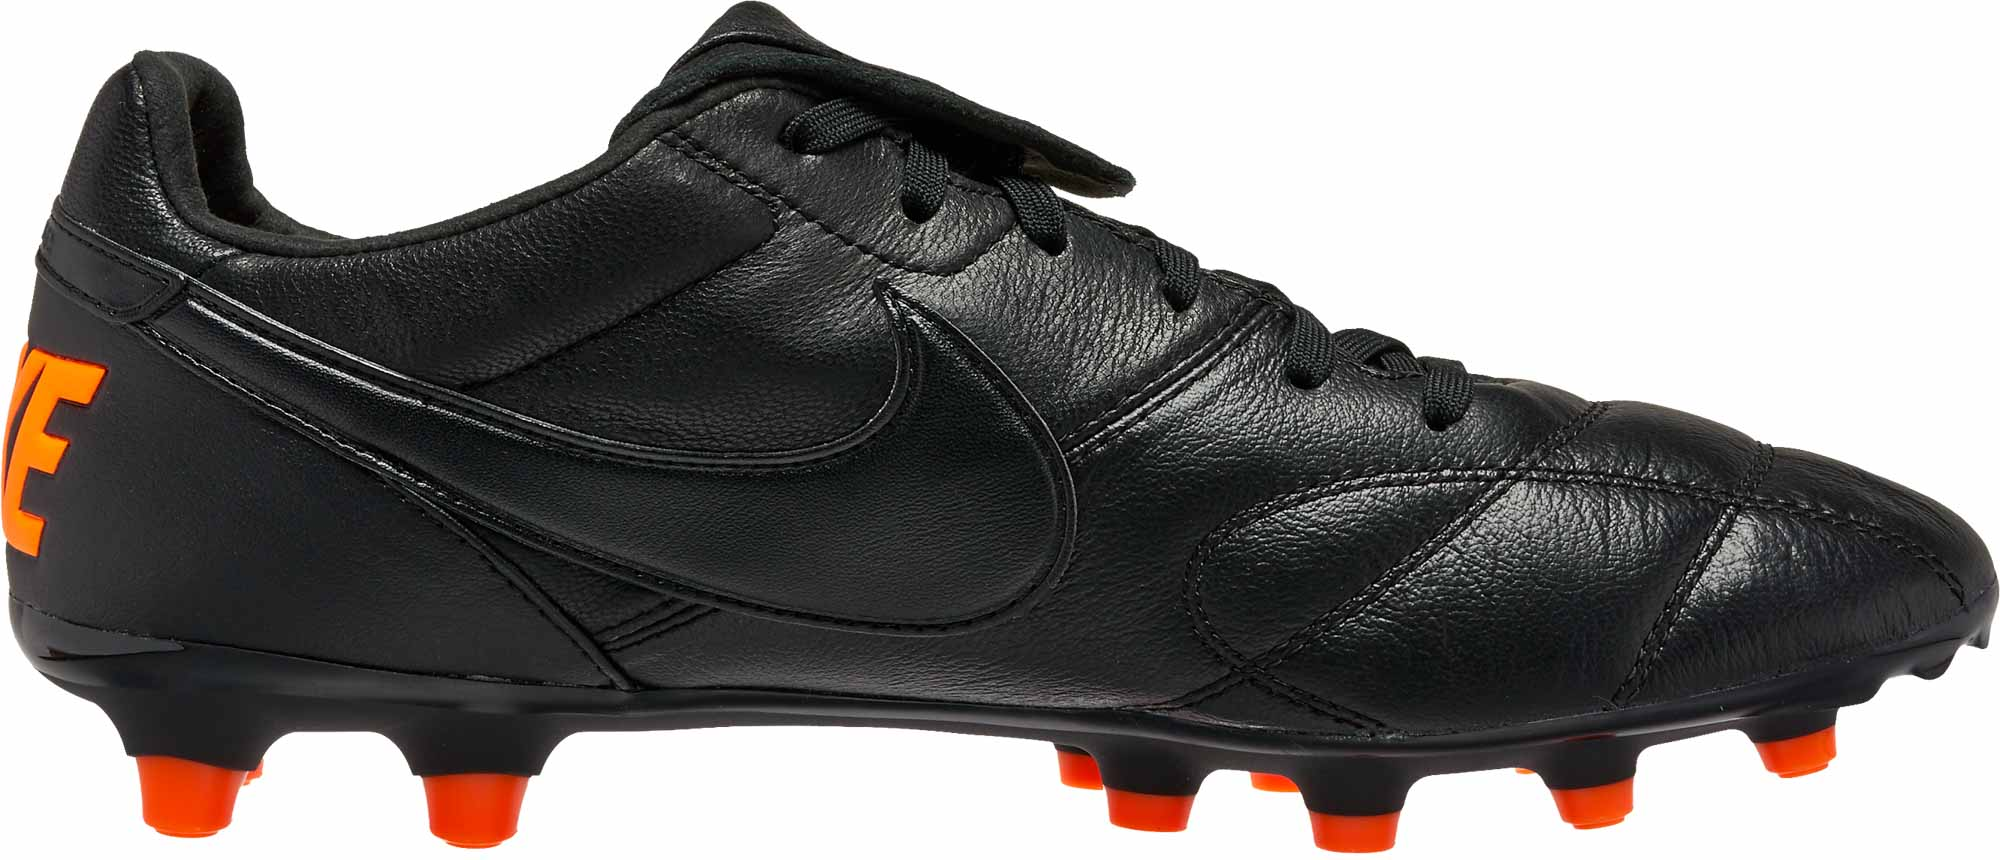 online retailer 891b0 76052 Home   Shop By Brand   Nike Soccer   Nike Soccer Shoes   Nike Tiempo ...